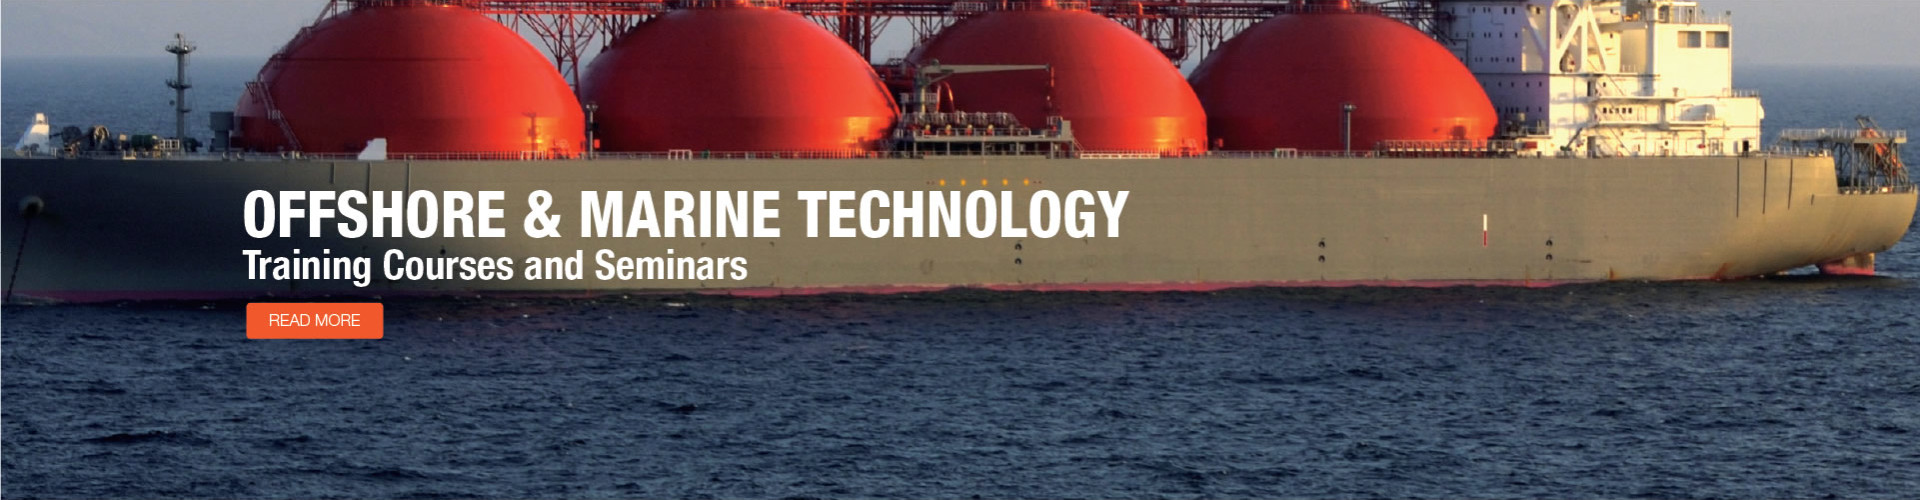 Offshore & Marine Technology